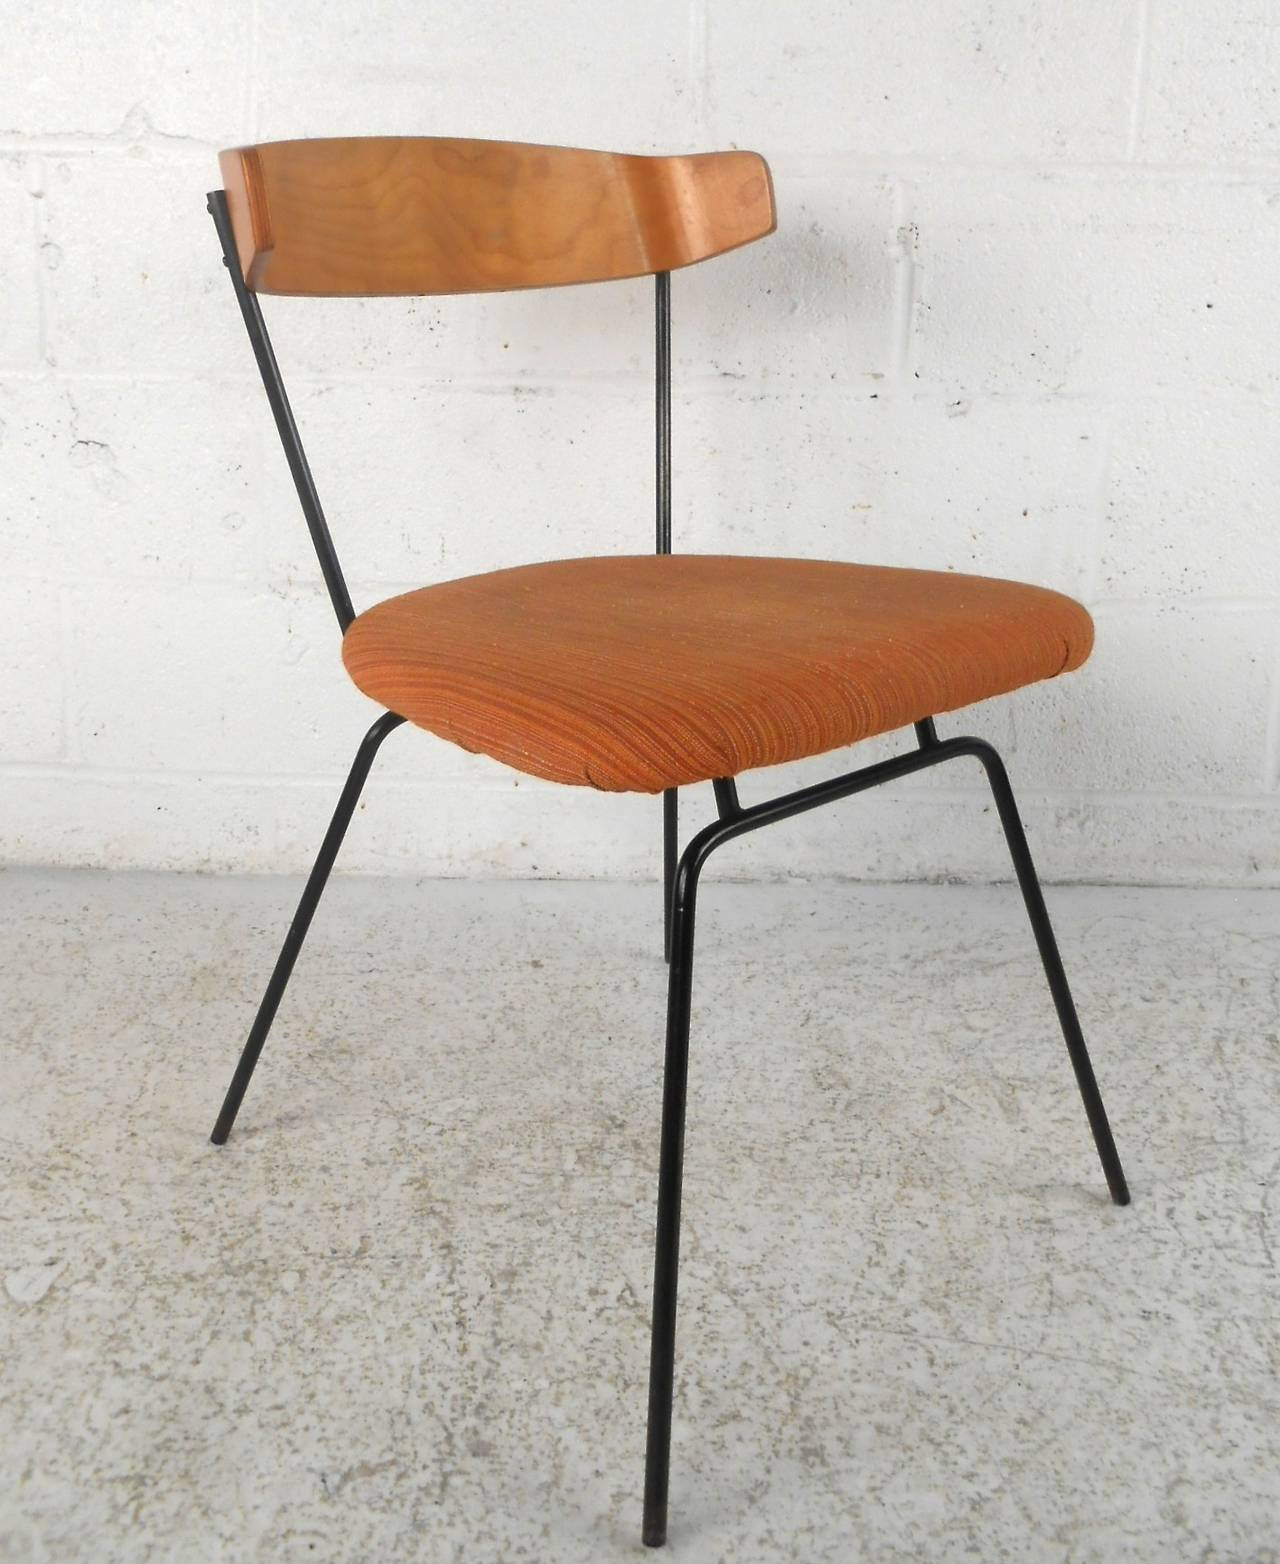 Paul Mccobb Chairs Mid Century Modern Paul Mccobb 1535 Style Bentwood Dining Chair